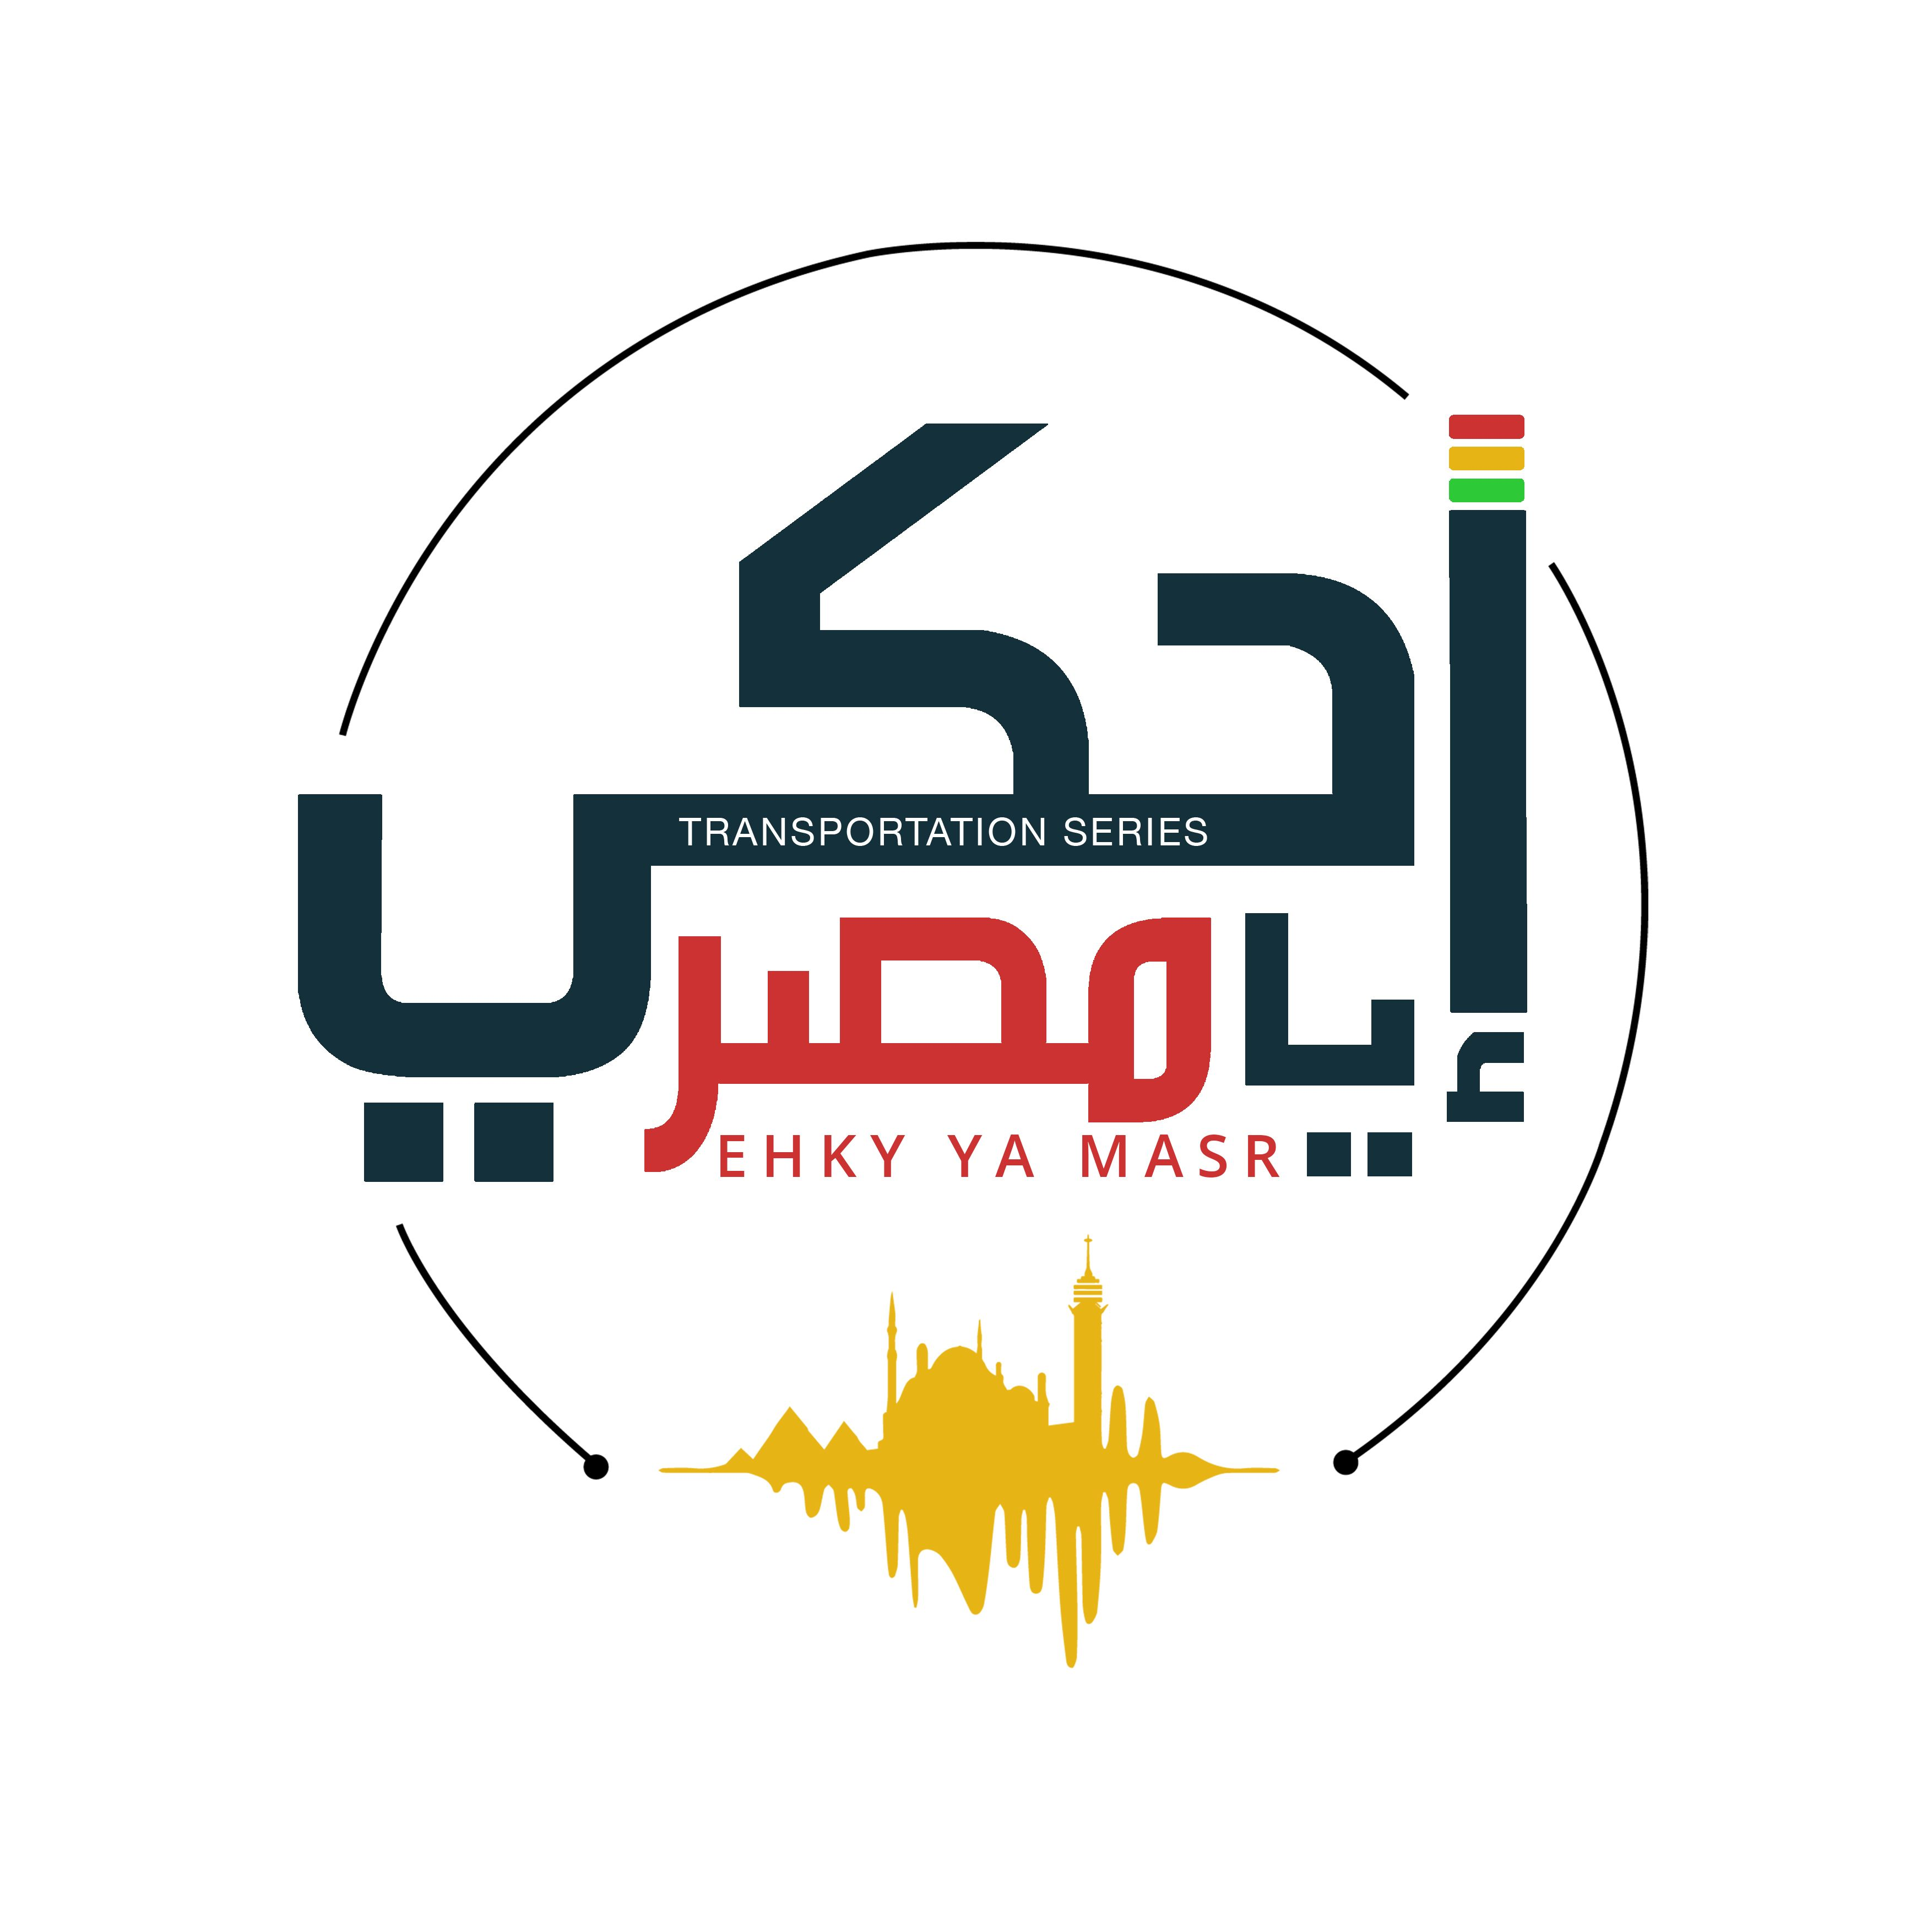 Ehky Ya Masr's Female Drivers in Cairo Promo